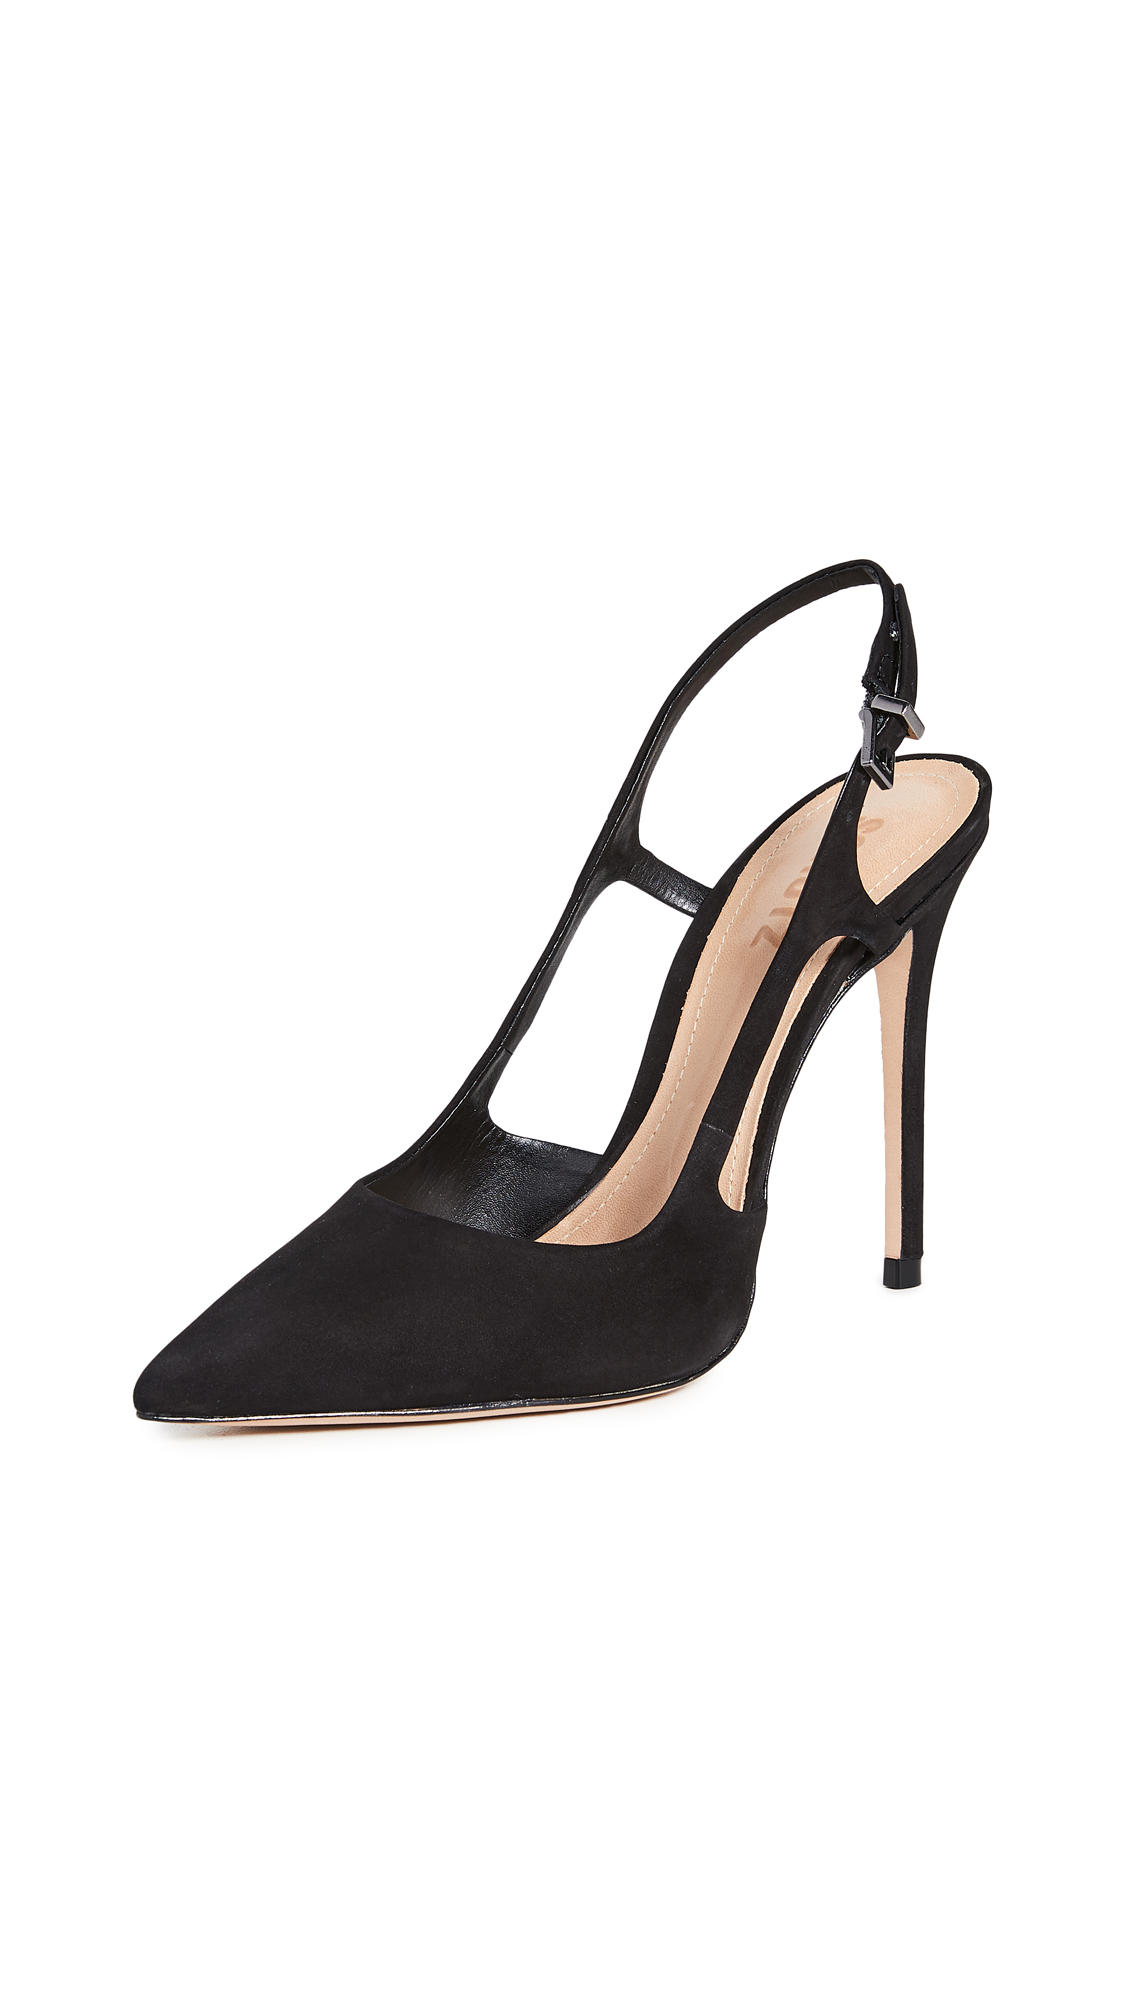 Schutz Boris Pumps - 30% Off Sale